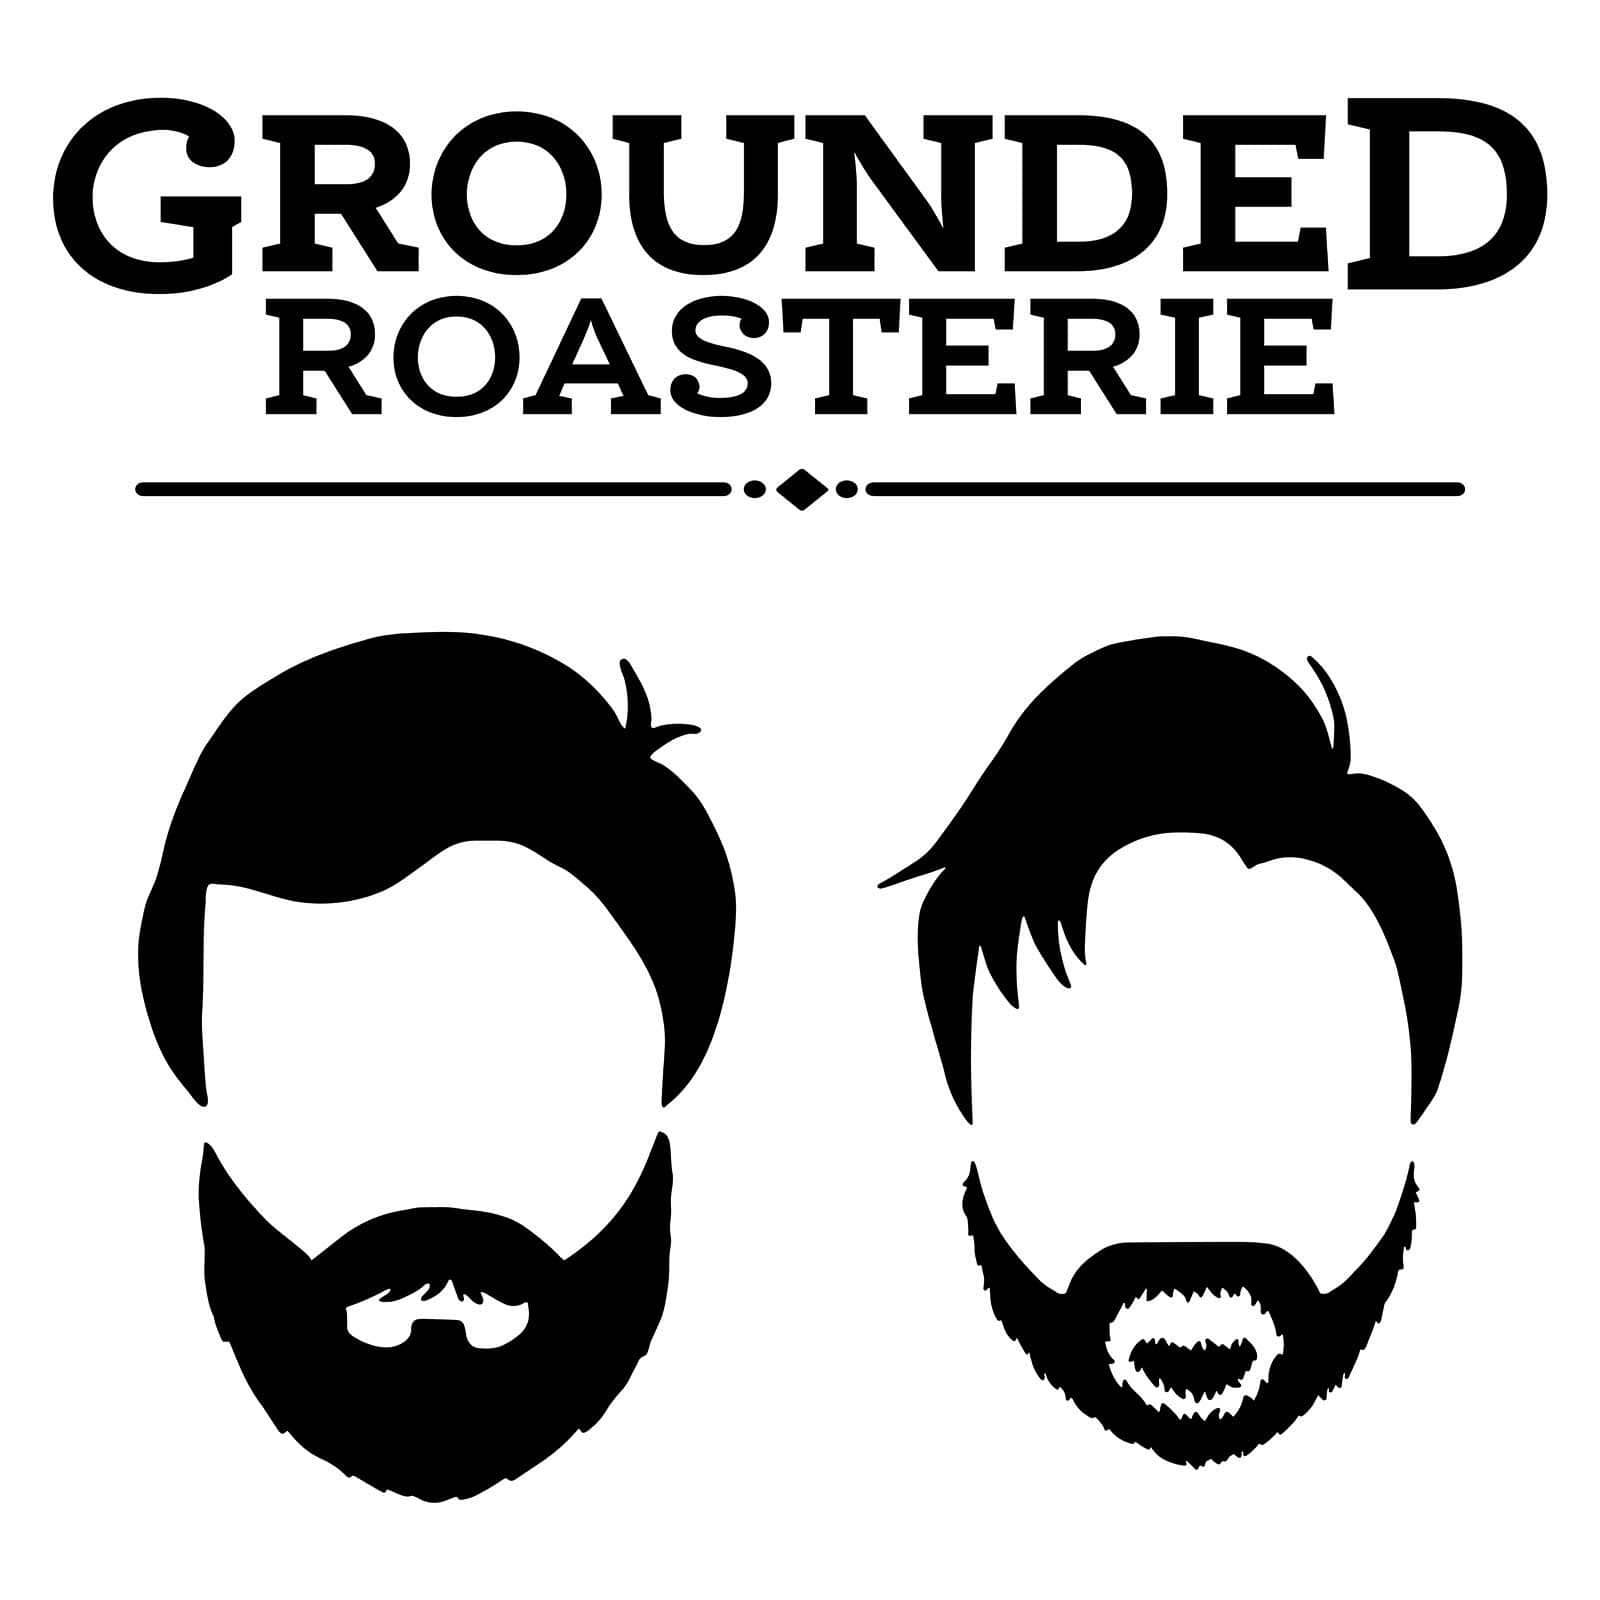 Grounded Roasterie